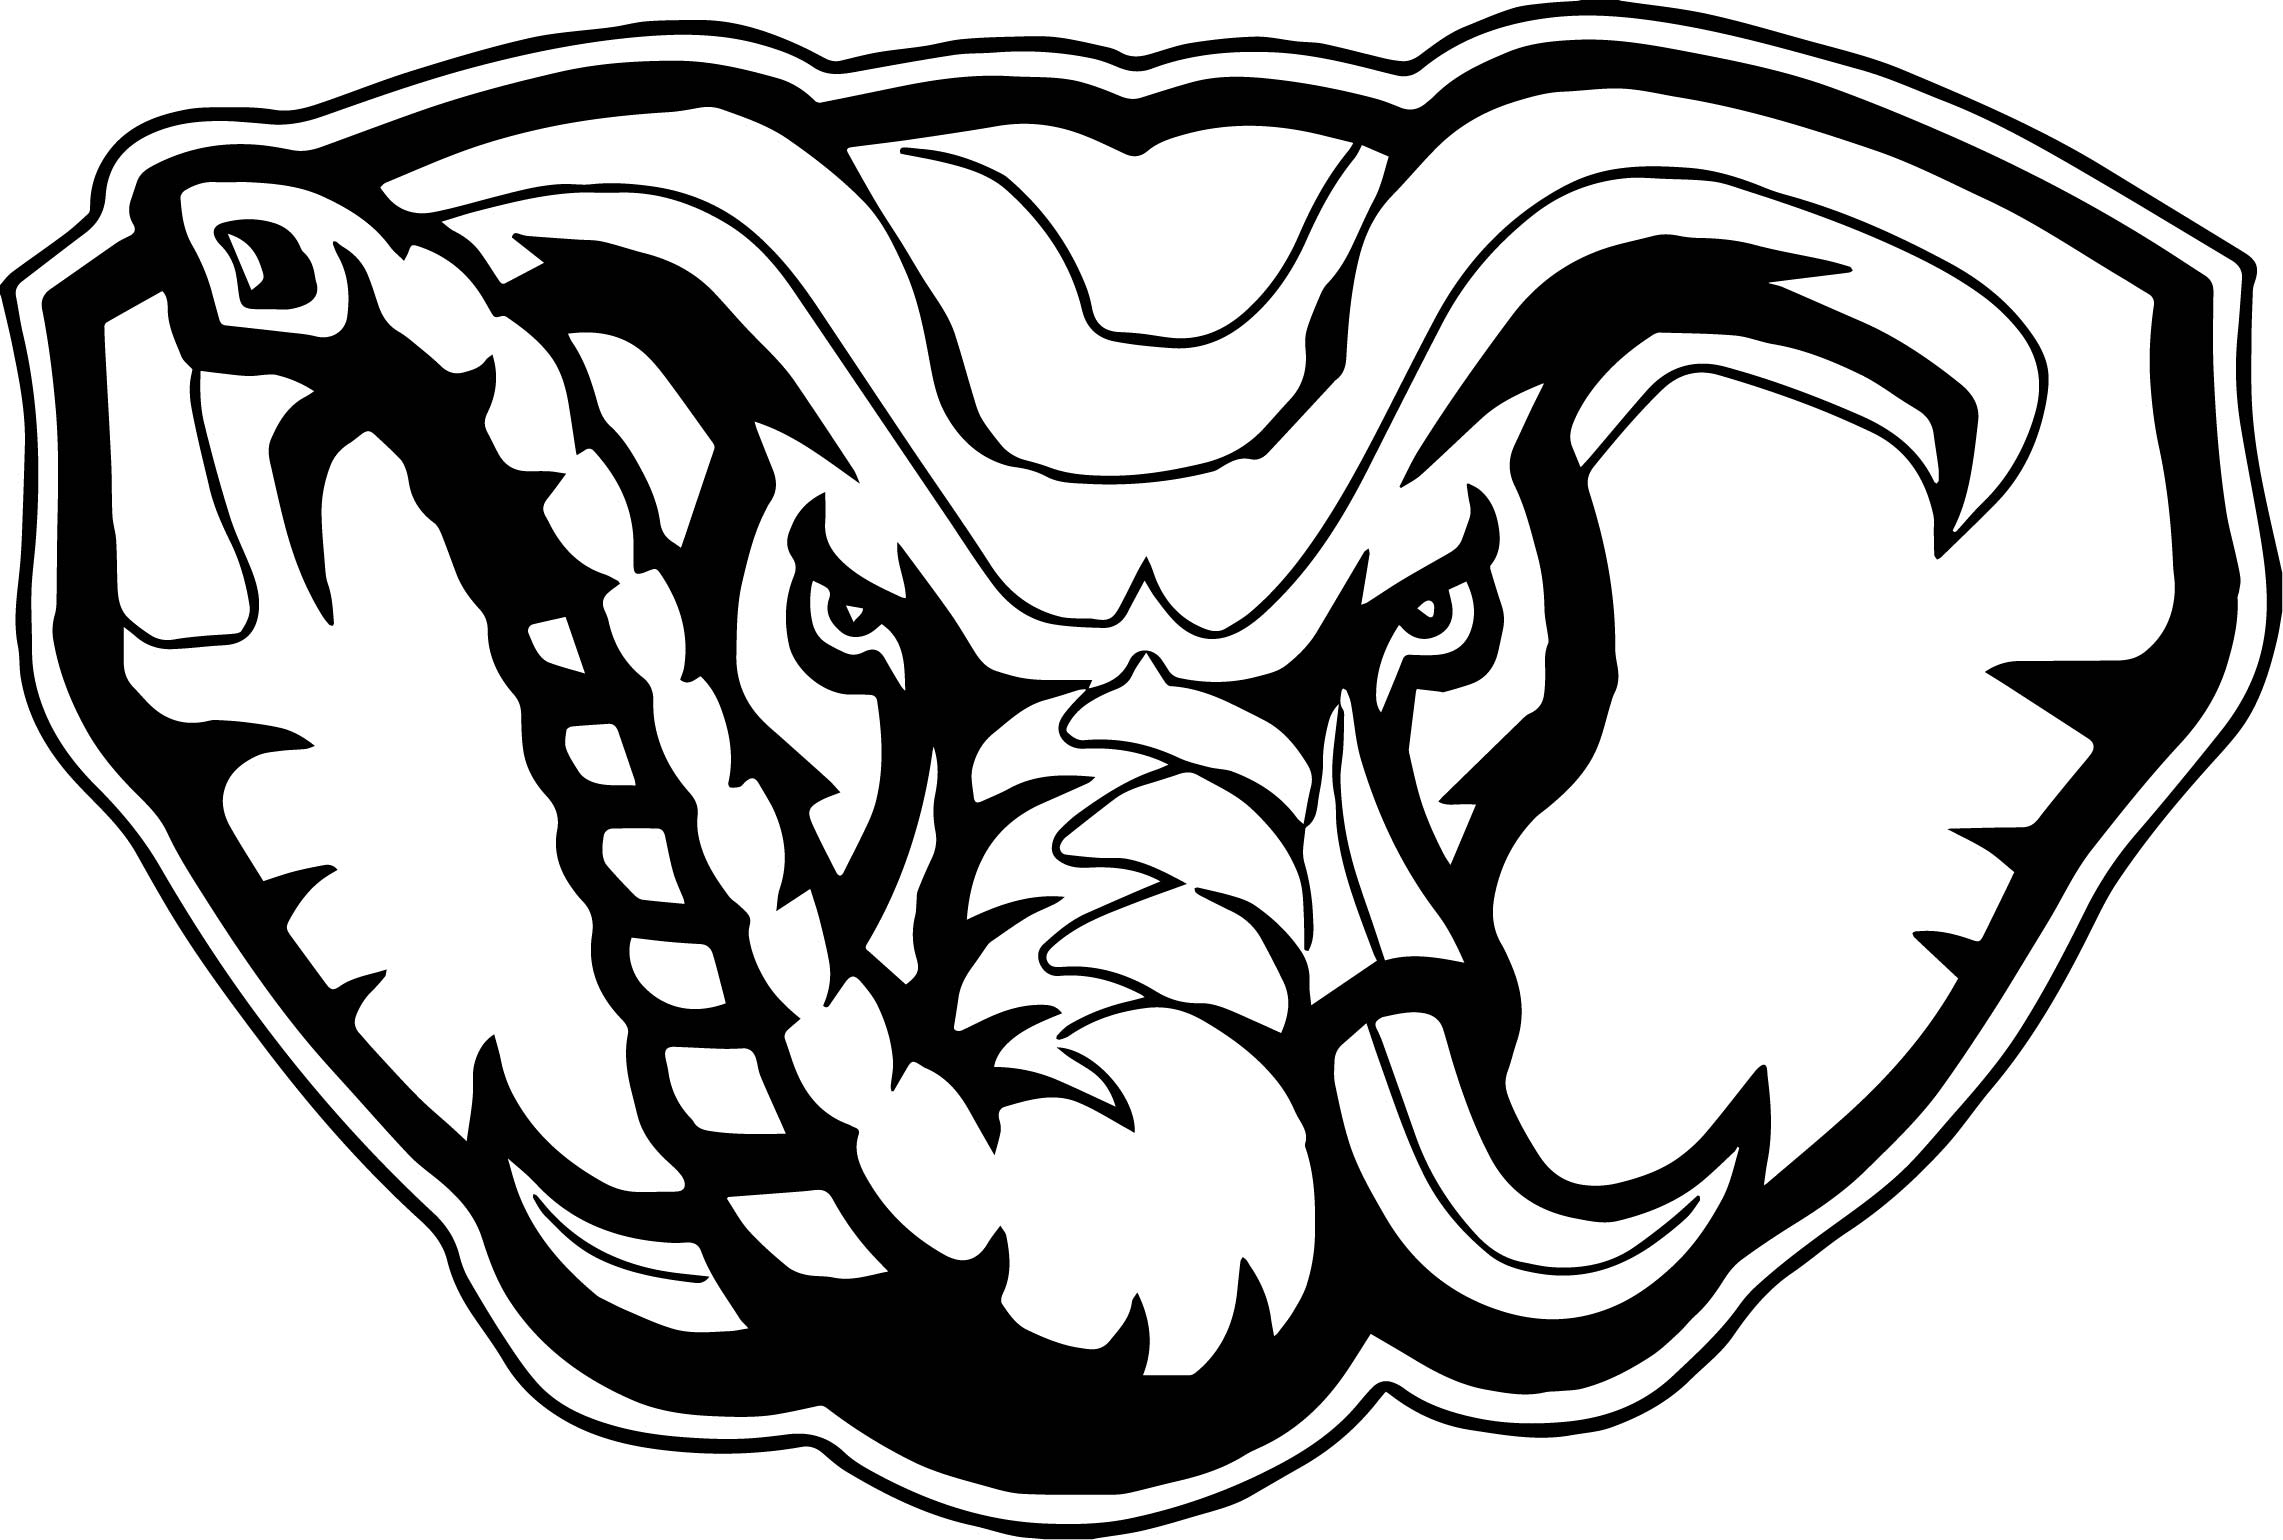 2283x1540 Alabama Football Coloring Pages Cool Free Football Coloring Pages